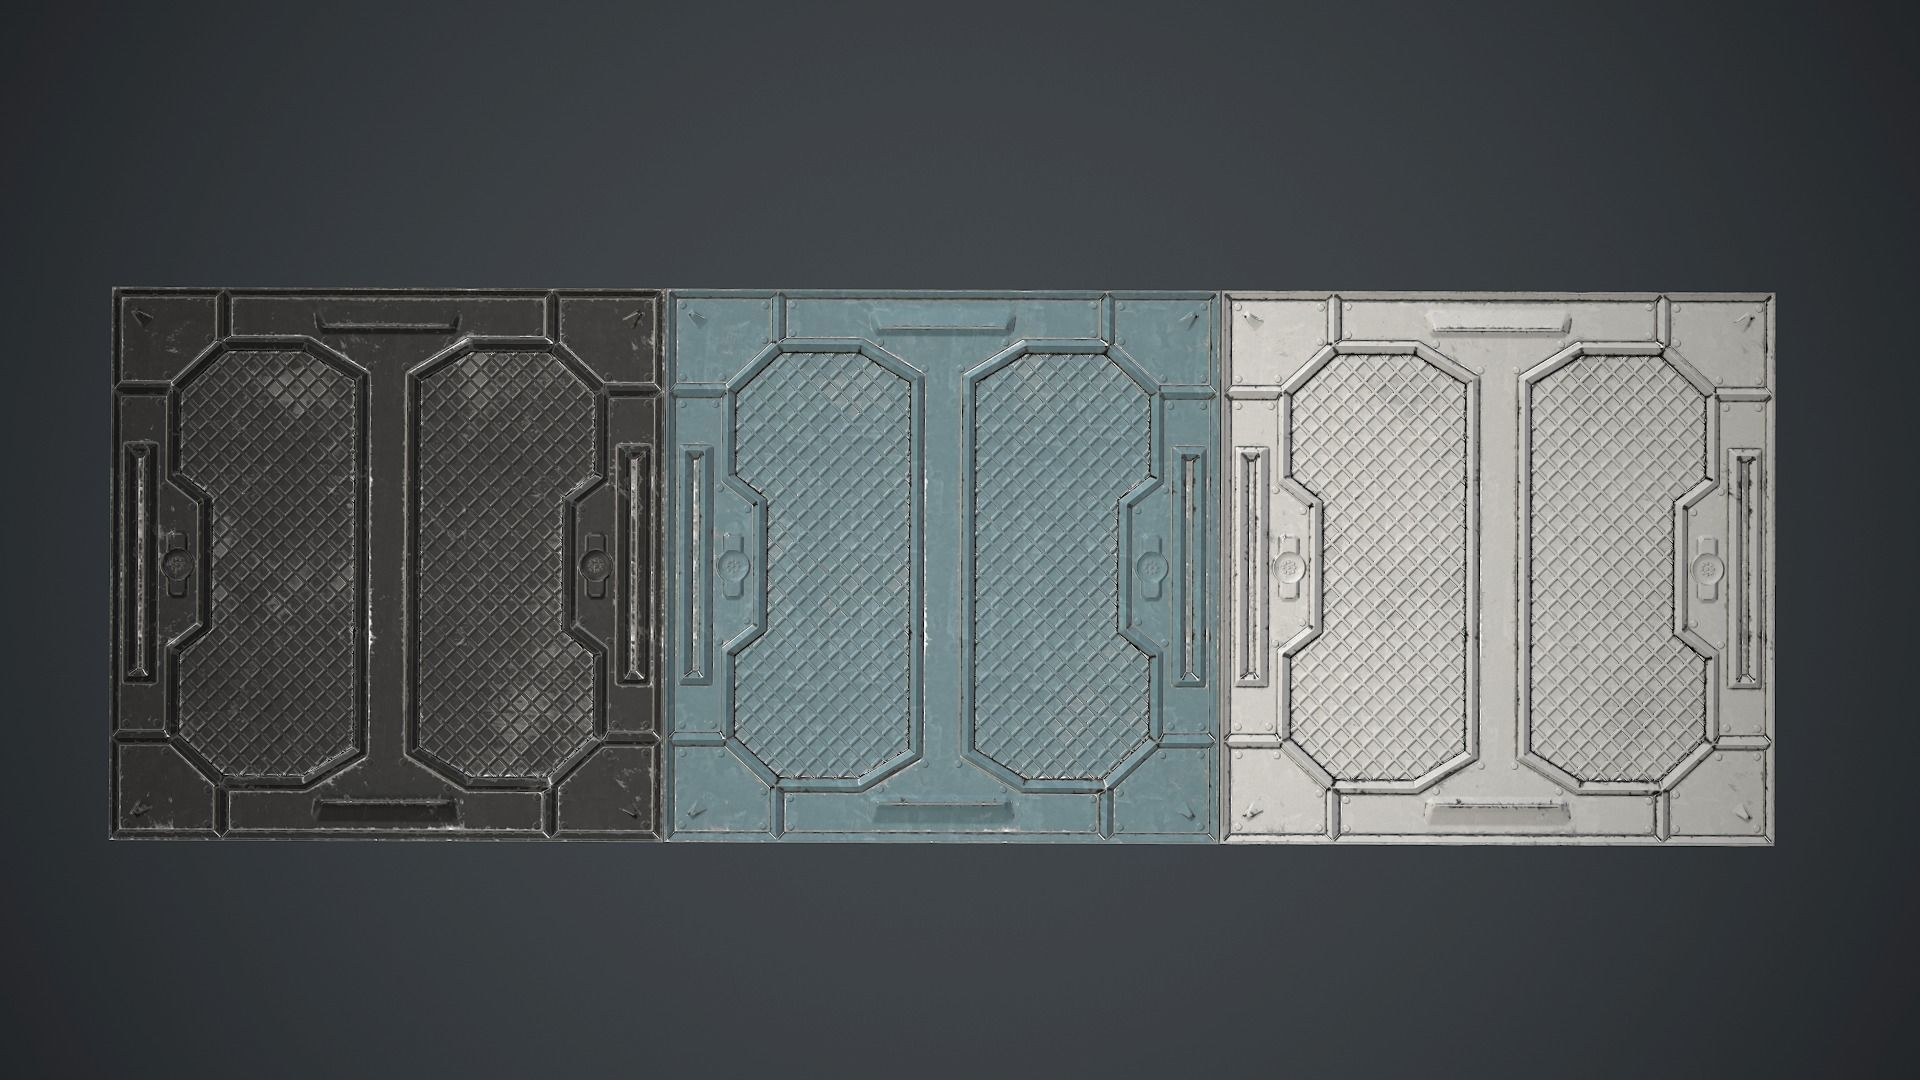 Sci Fi Floor Tiles On Scifi Floor Metal Plates Pbr Game Ready 3d Model Lowpoly Max Scifi Floor Metal Plates Pbr Game Ready 3d Asset